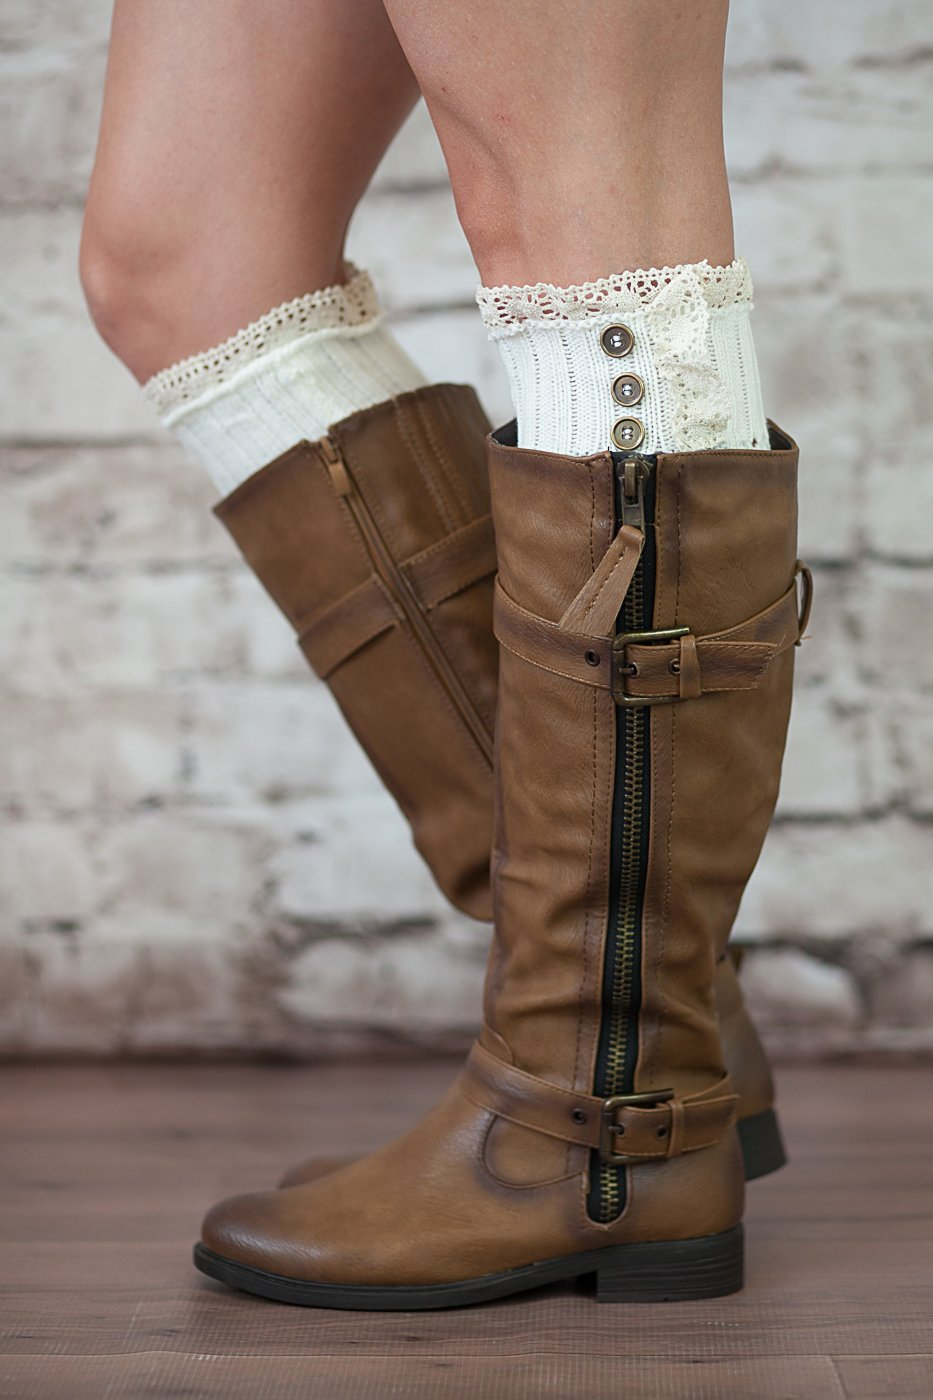 Boot Cuffs Vintage 3 Button Style Women's Boutique Socks Brand by Modern Boho Ivory by Boutique Socks (Image #3)